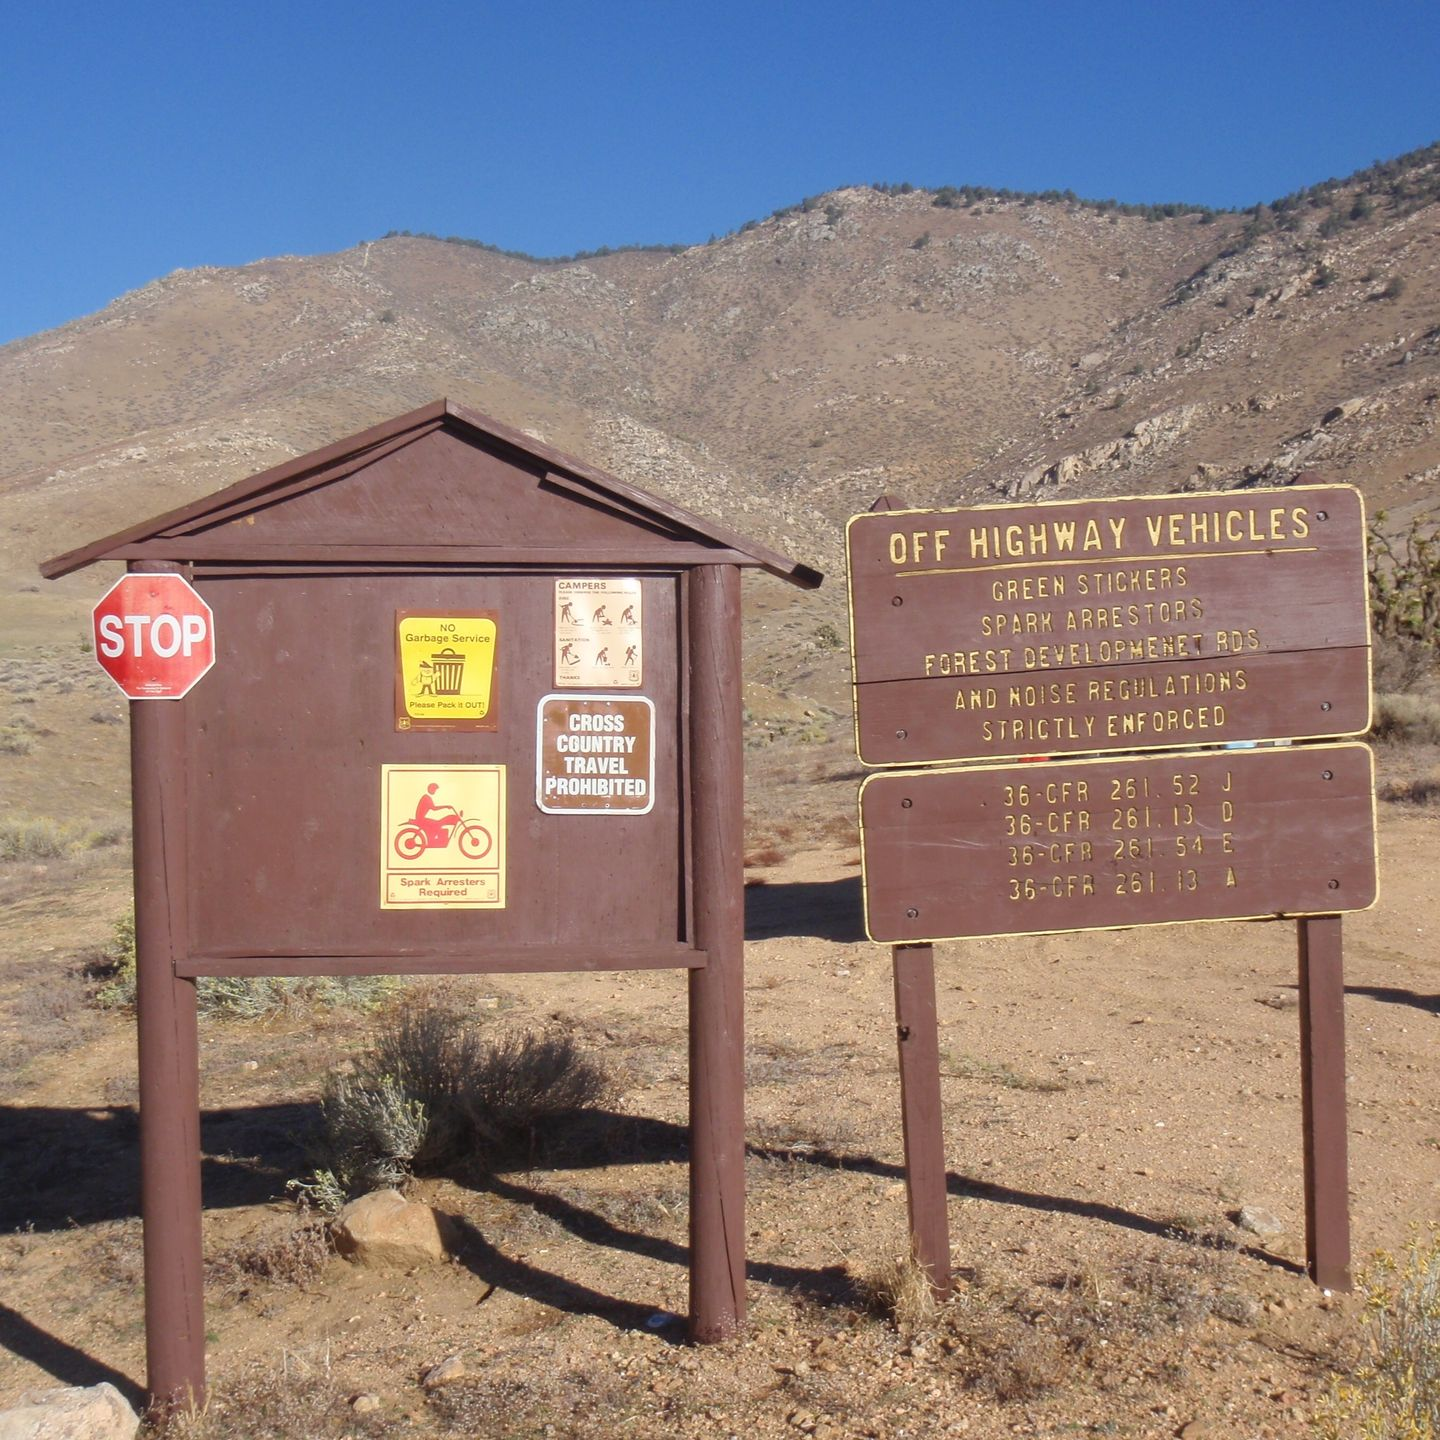 SC65 - McIvers Cabin - Waypoint 11: Intersection with 27S11